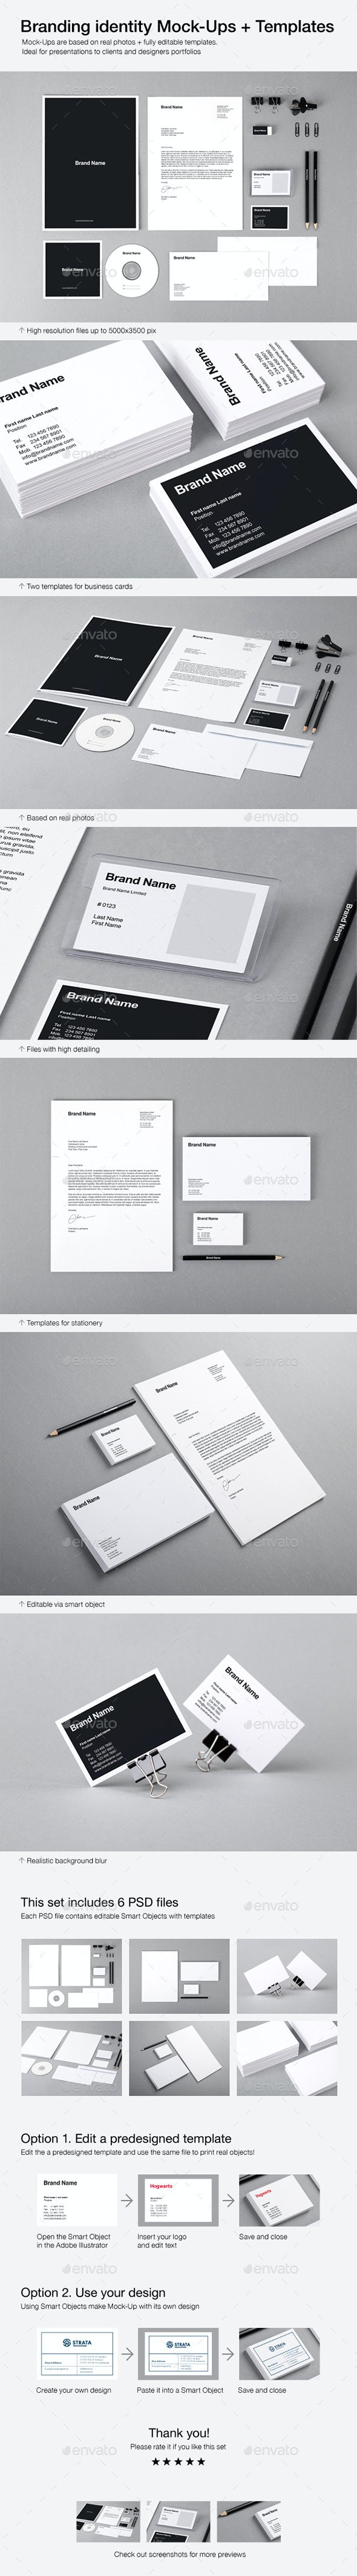 Branding Identity Mock-Ups and Templates - Stationery Print